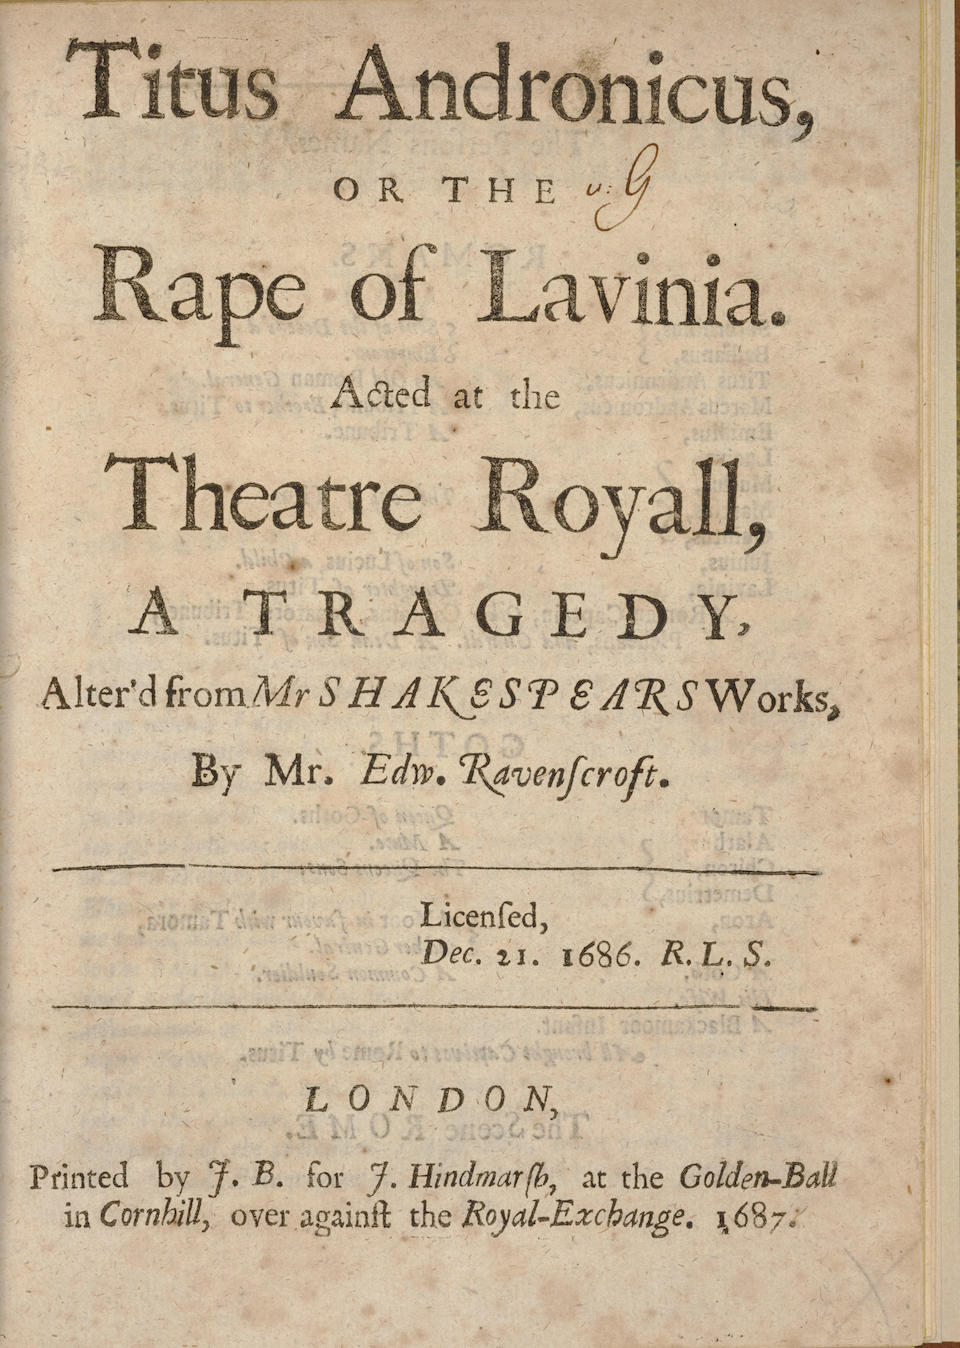 SHAKESPEARE, WILLIAM. 1564-1616. Titus Andronicus, of the Rape of Lavinia. Acted at the Theatre Royall, A Tragedy.... London: Printed by J.B. for J. Hindmarsh, 1687.